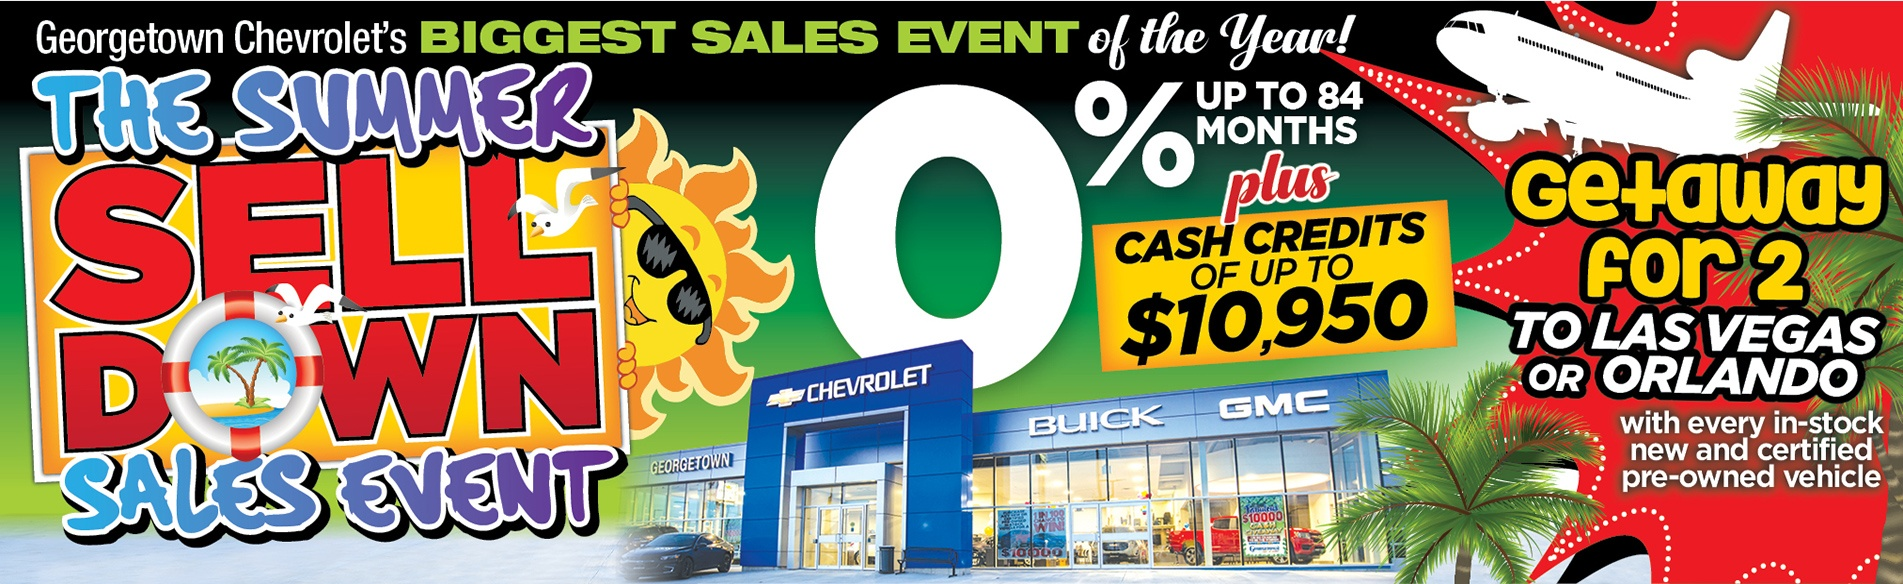 Georgetown Chevrolet Summer Selldown Event!